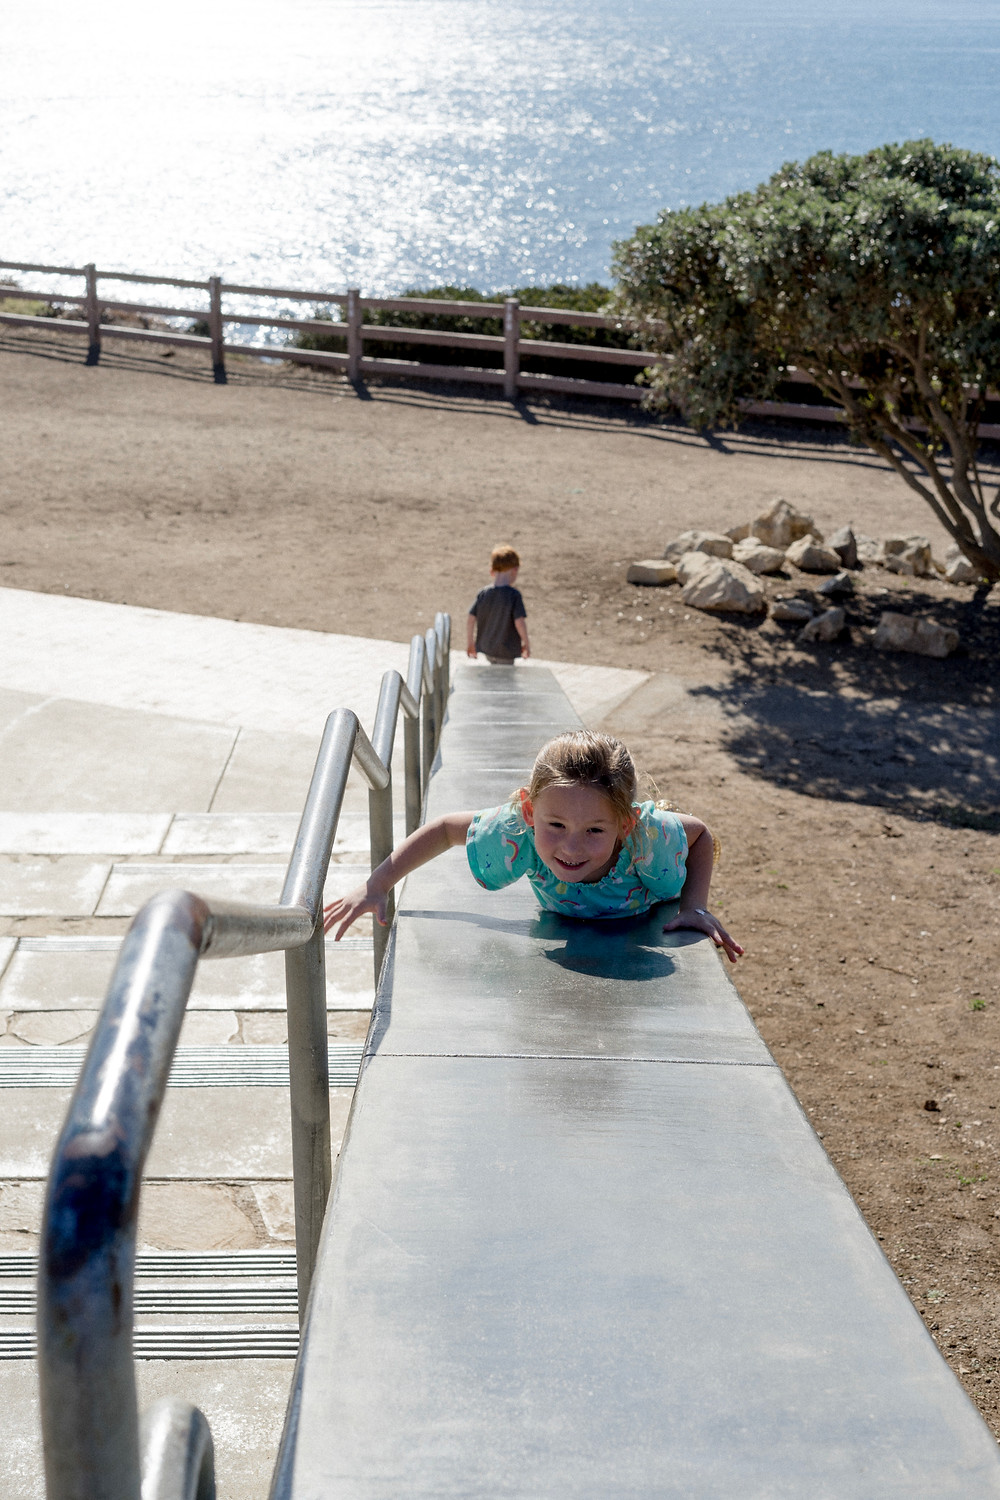 Young girl sliding down a slide, looking back at the camera